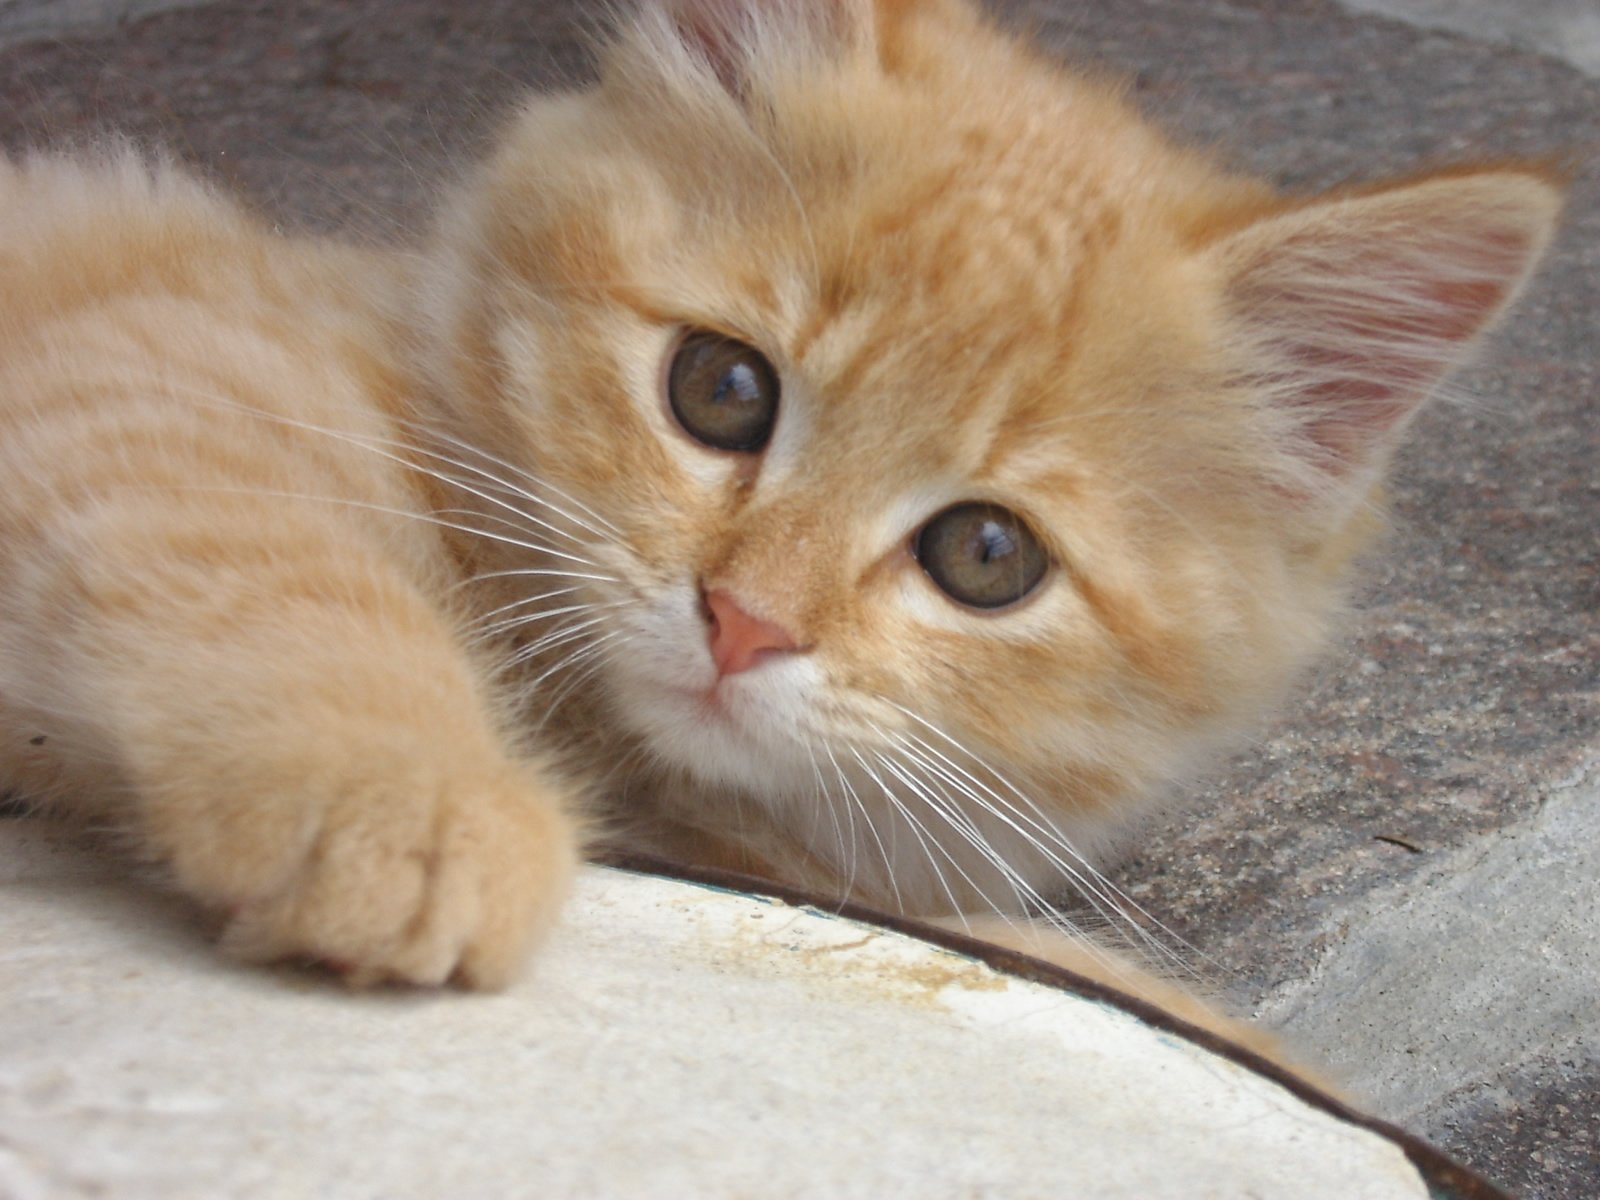 Free cat images pictures and royalty free stock photos sweet cats 2 voltagebd Images